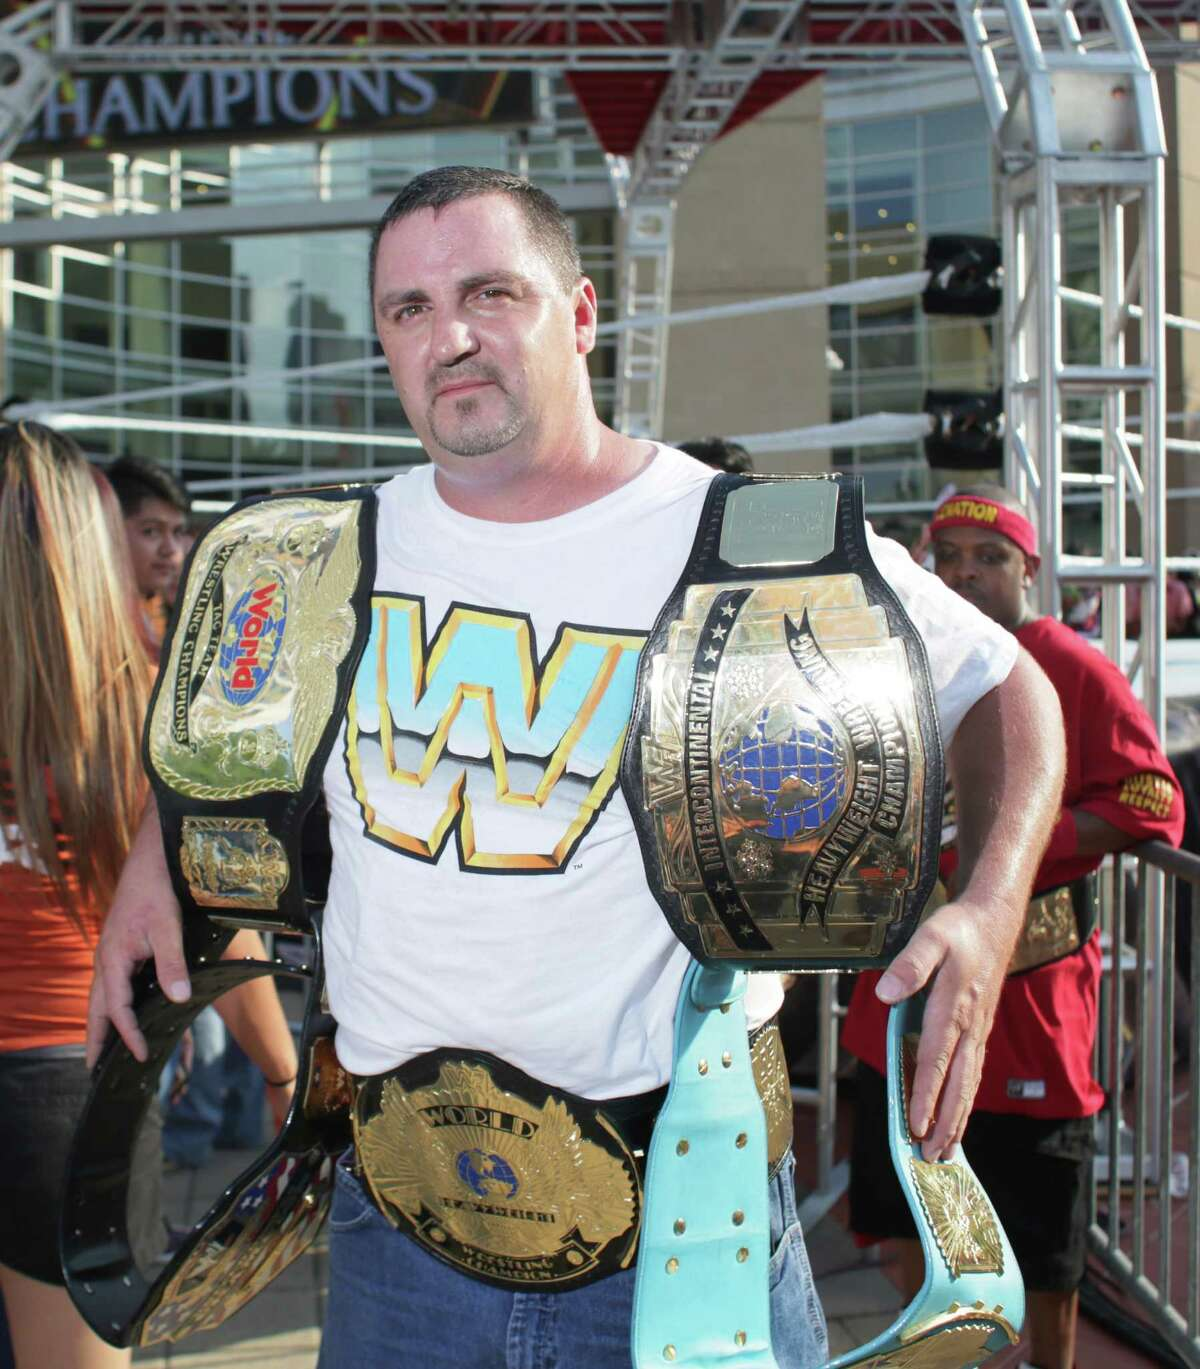 Fans pose for a photo before the WWE Night of Champions at the Toyota Center, Sunday, September 20, in Houston, Texas.